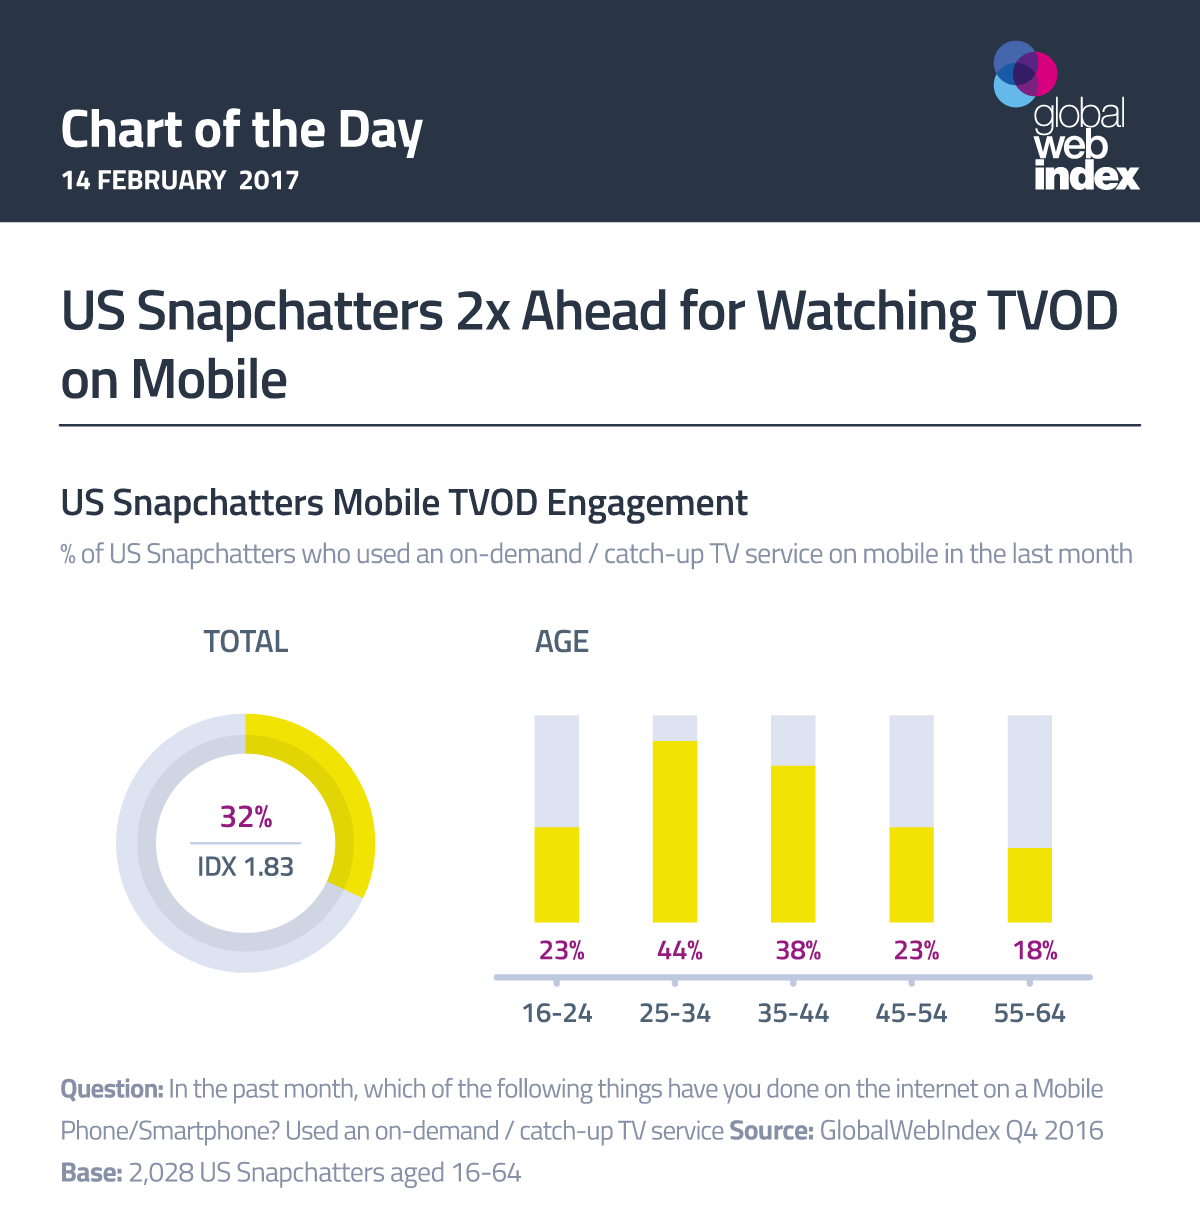 US Snapchatters 2x Ahead for Watching TVOD on Mobile